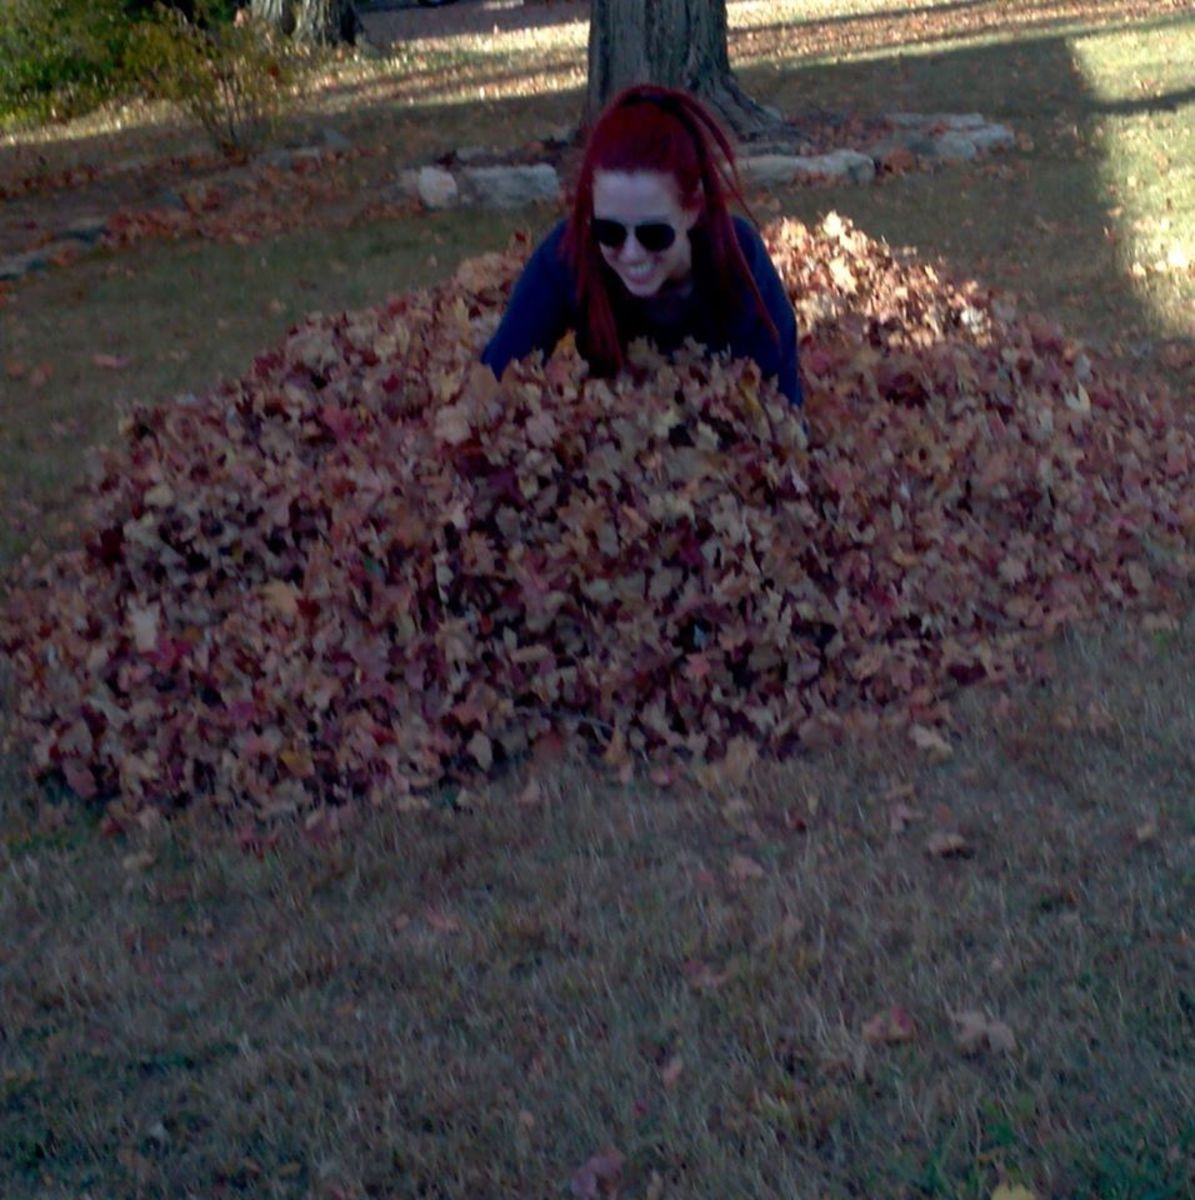 You're never too old to jump into a leaf pile!